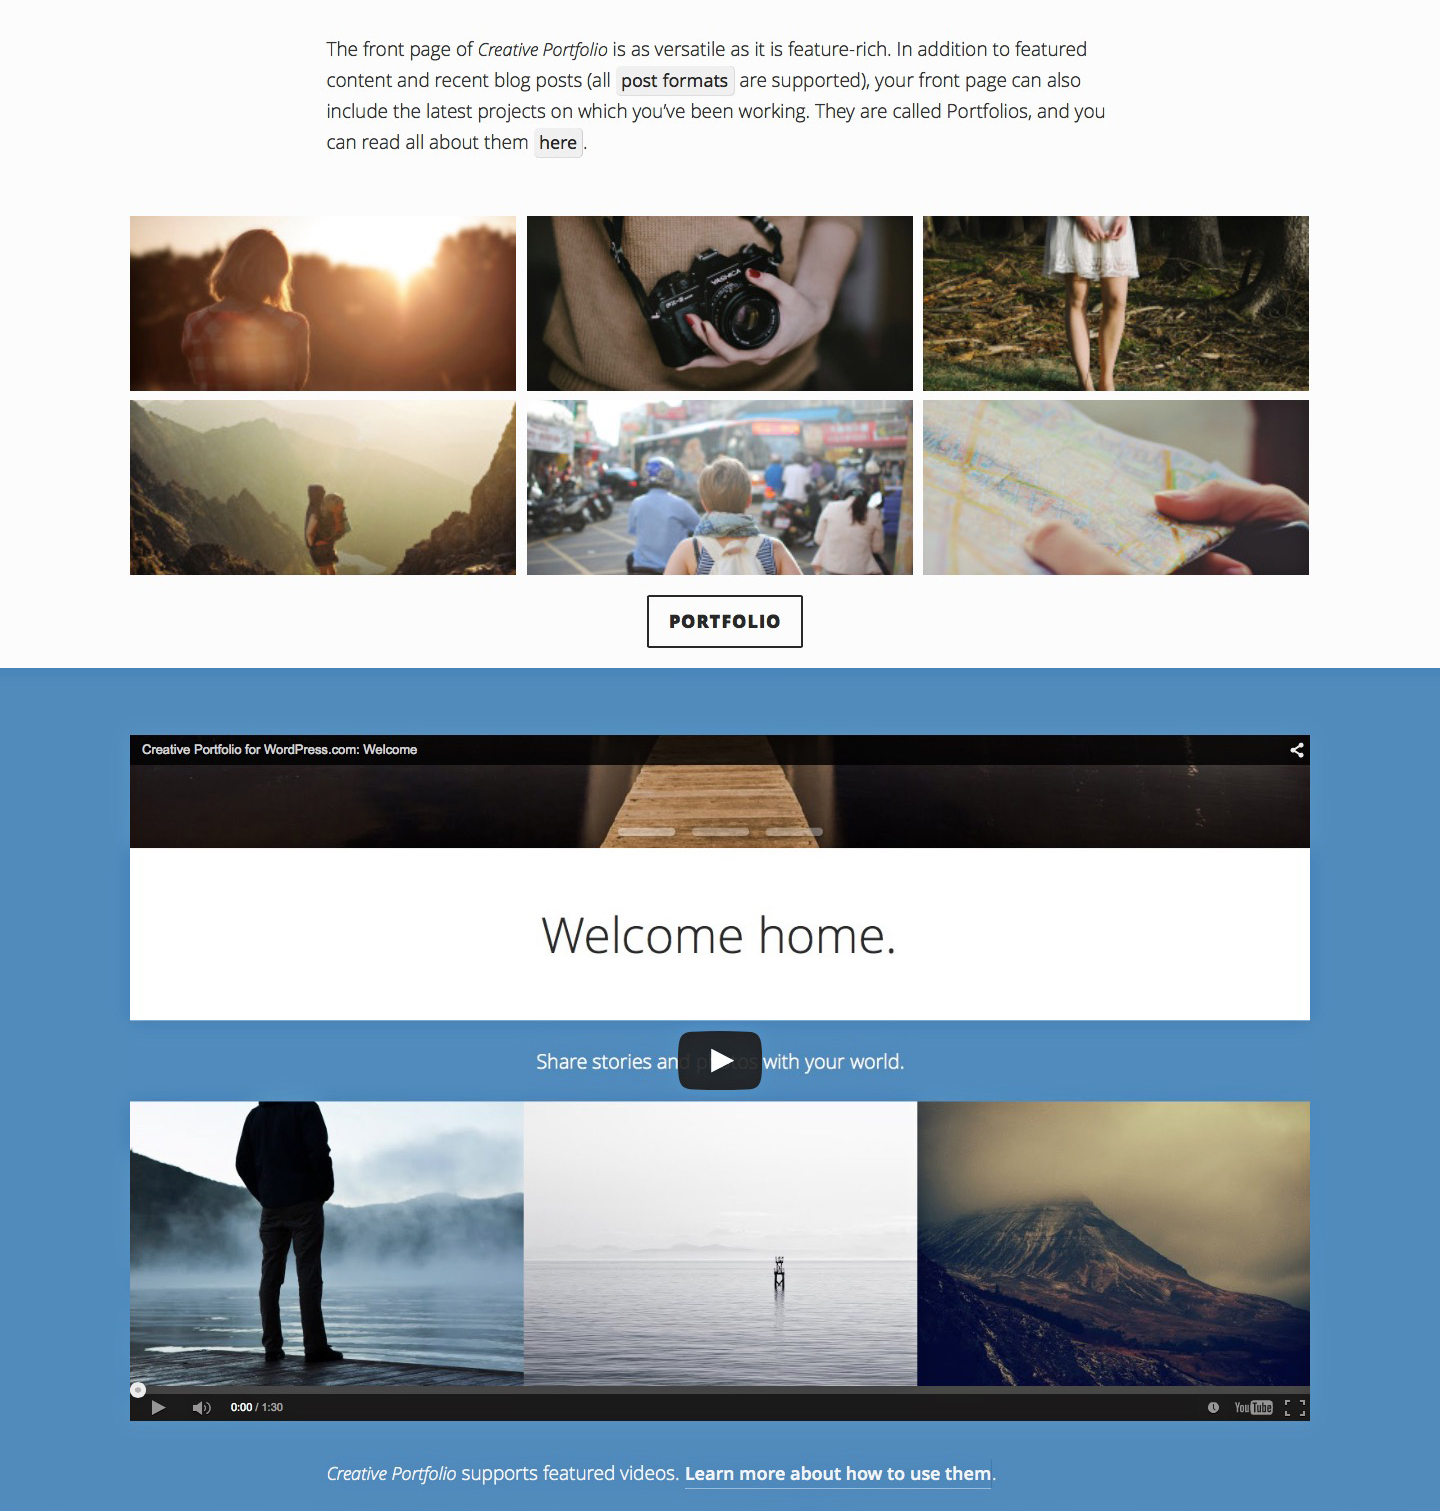 1) The content at the top of this image is the content of the page that you set as your front page template; 2) Portfolio projects; 3) This featured video area displays your latest video post format post.